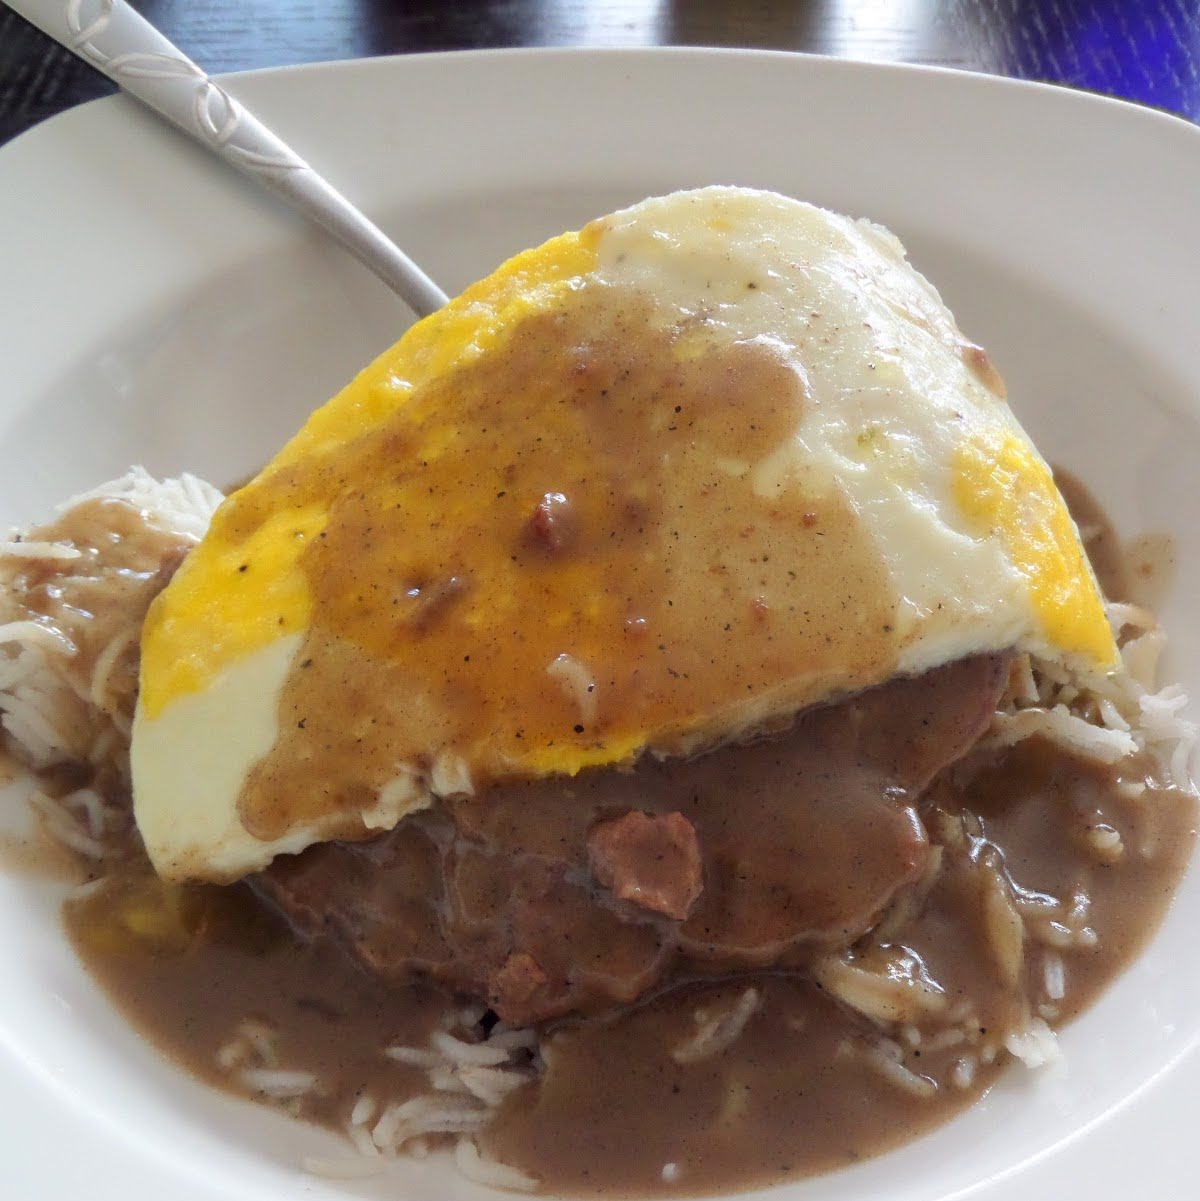 Loco Moco:  White rice smothered in brown gravy and a beef patty topped with a fried egg.  The Hawaiian breakfast of champions.